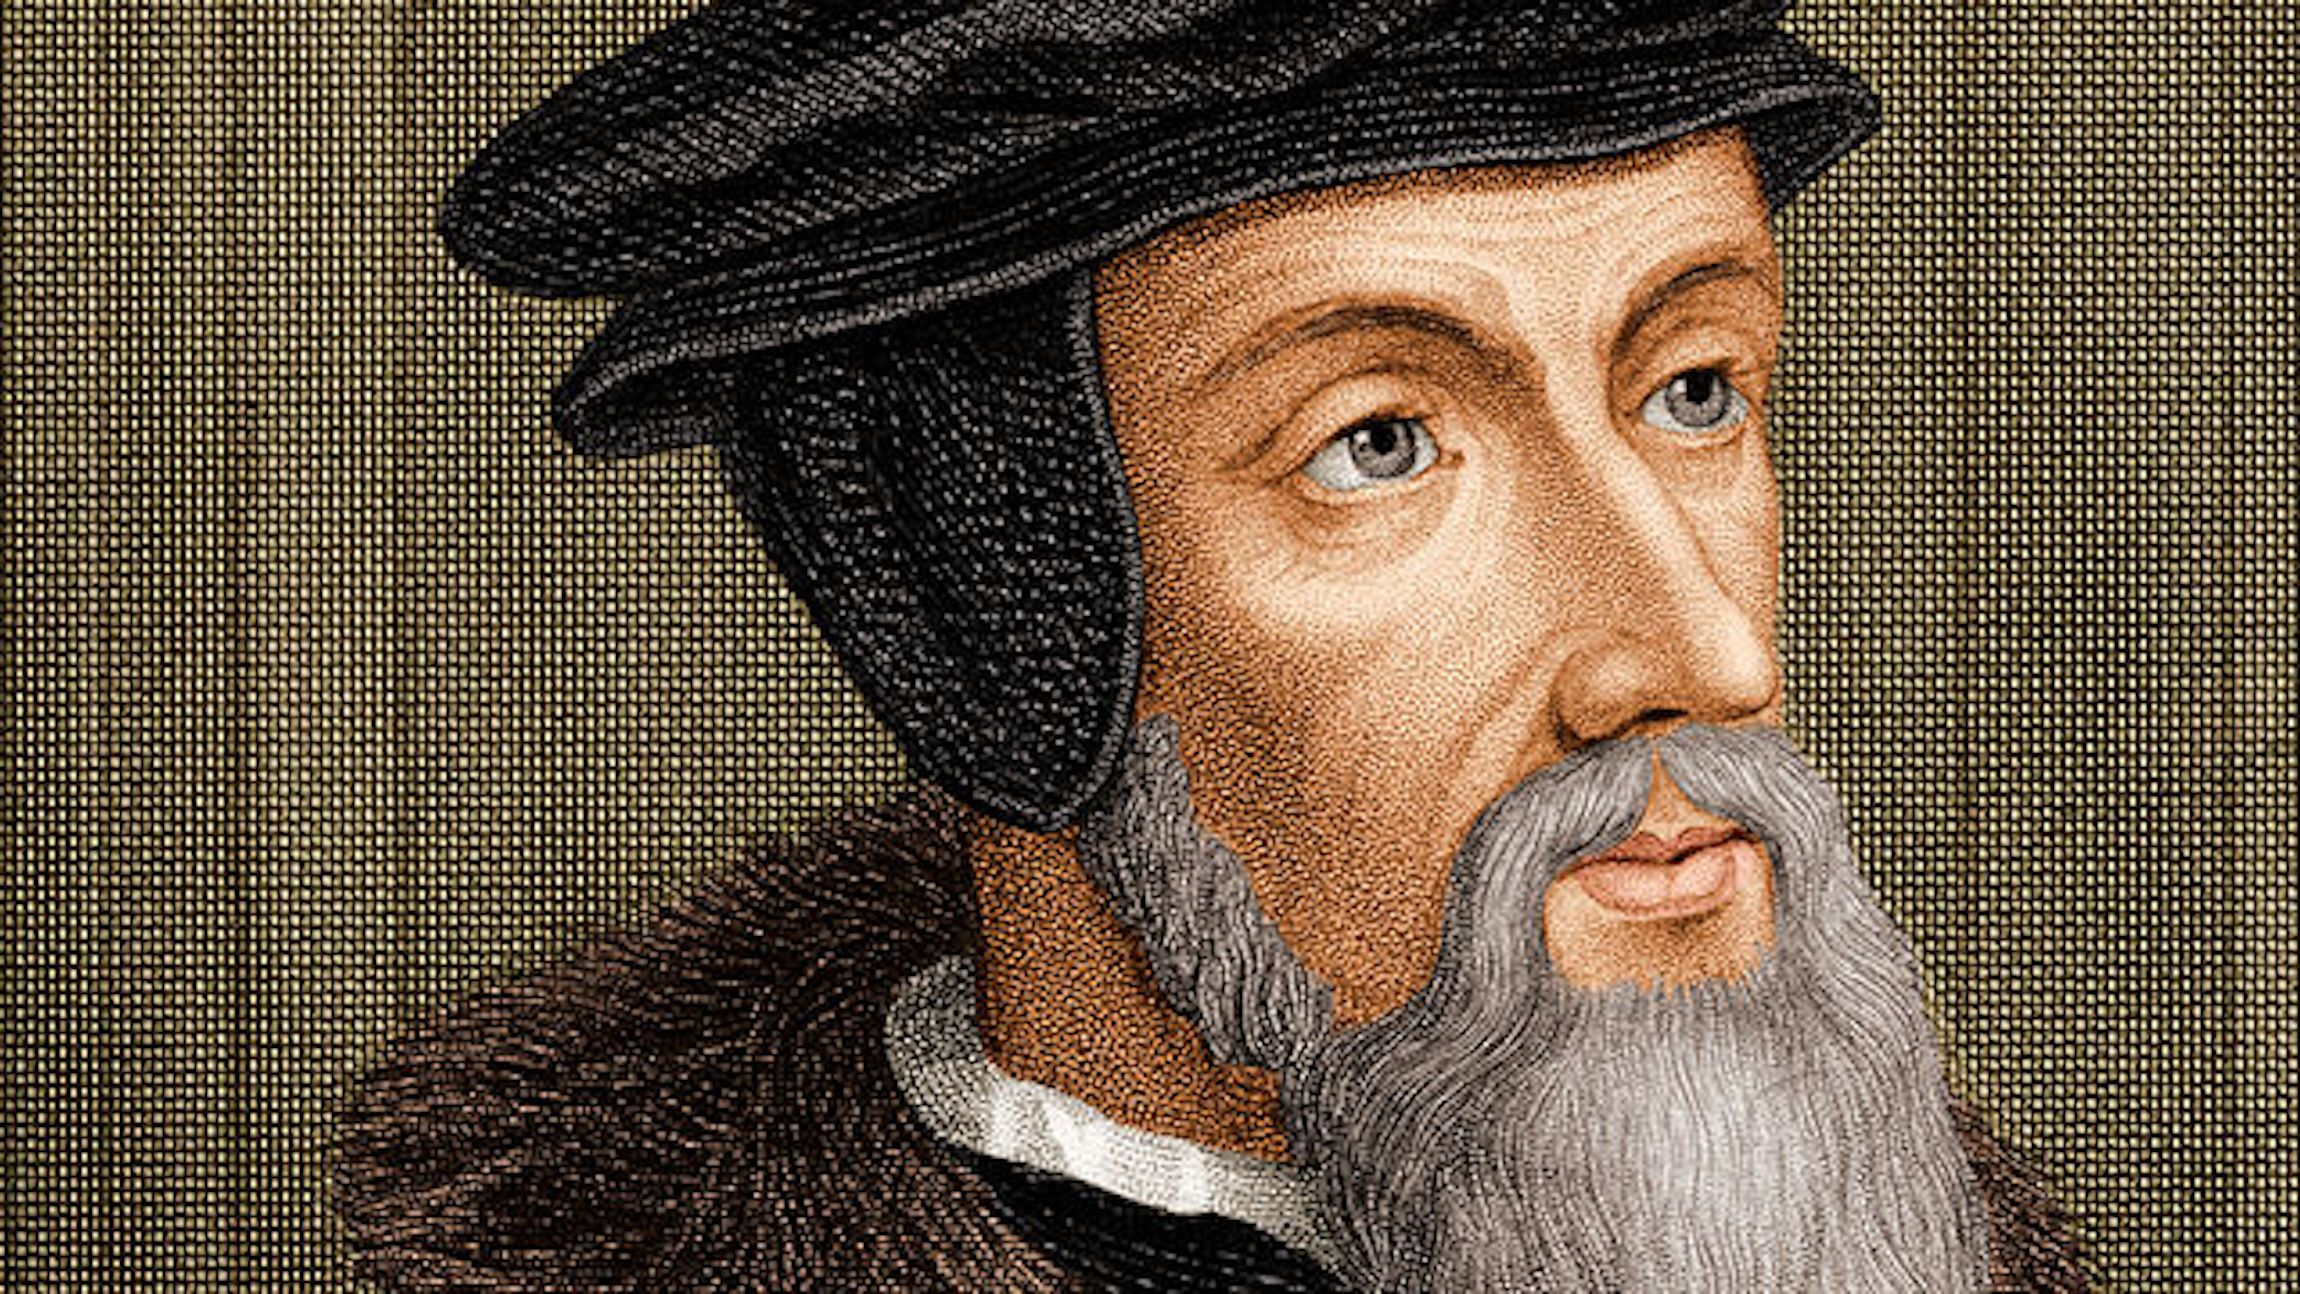 Things I Wish I Could Tell My Younger Self About Calvinism Or How To Be Less Of Jerk John Calvin Calvinism Christian Devotions